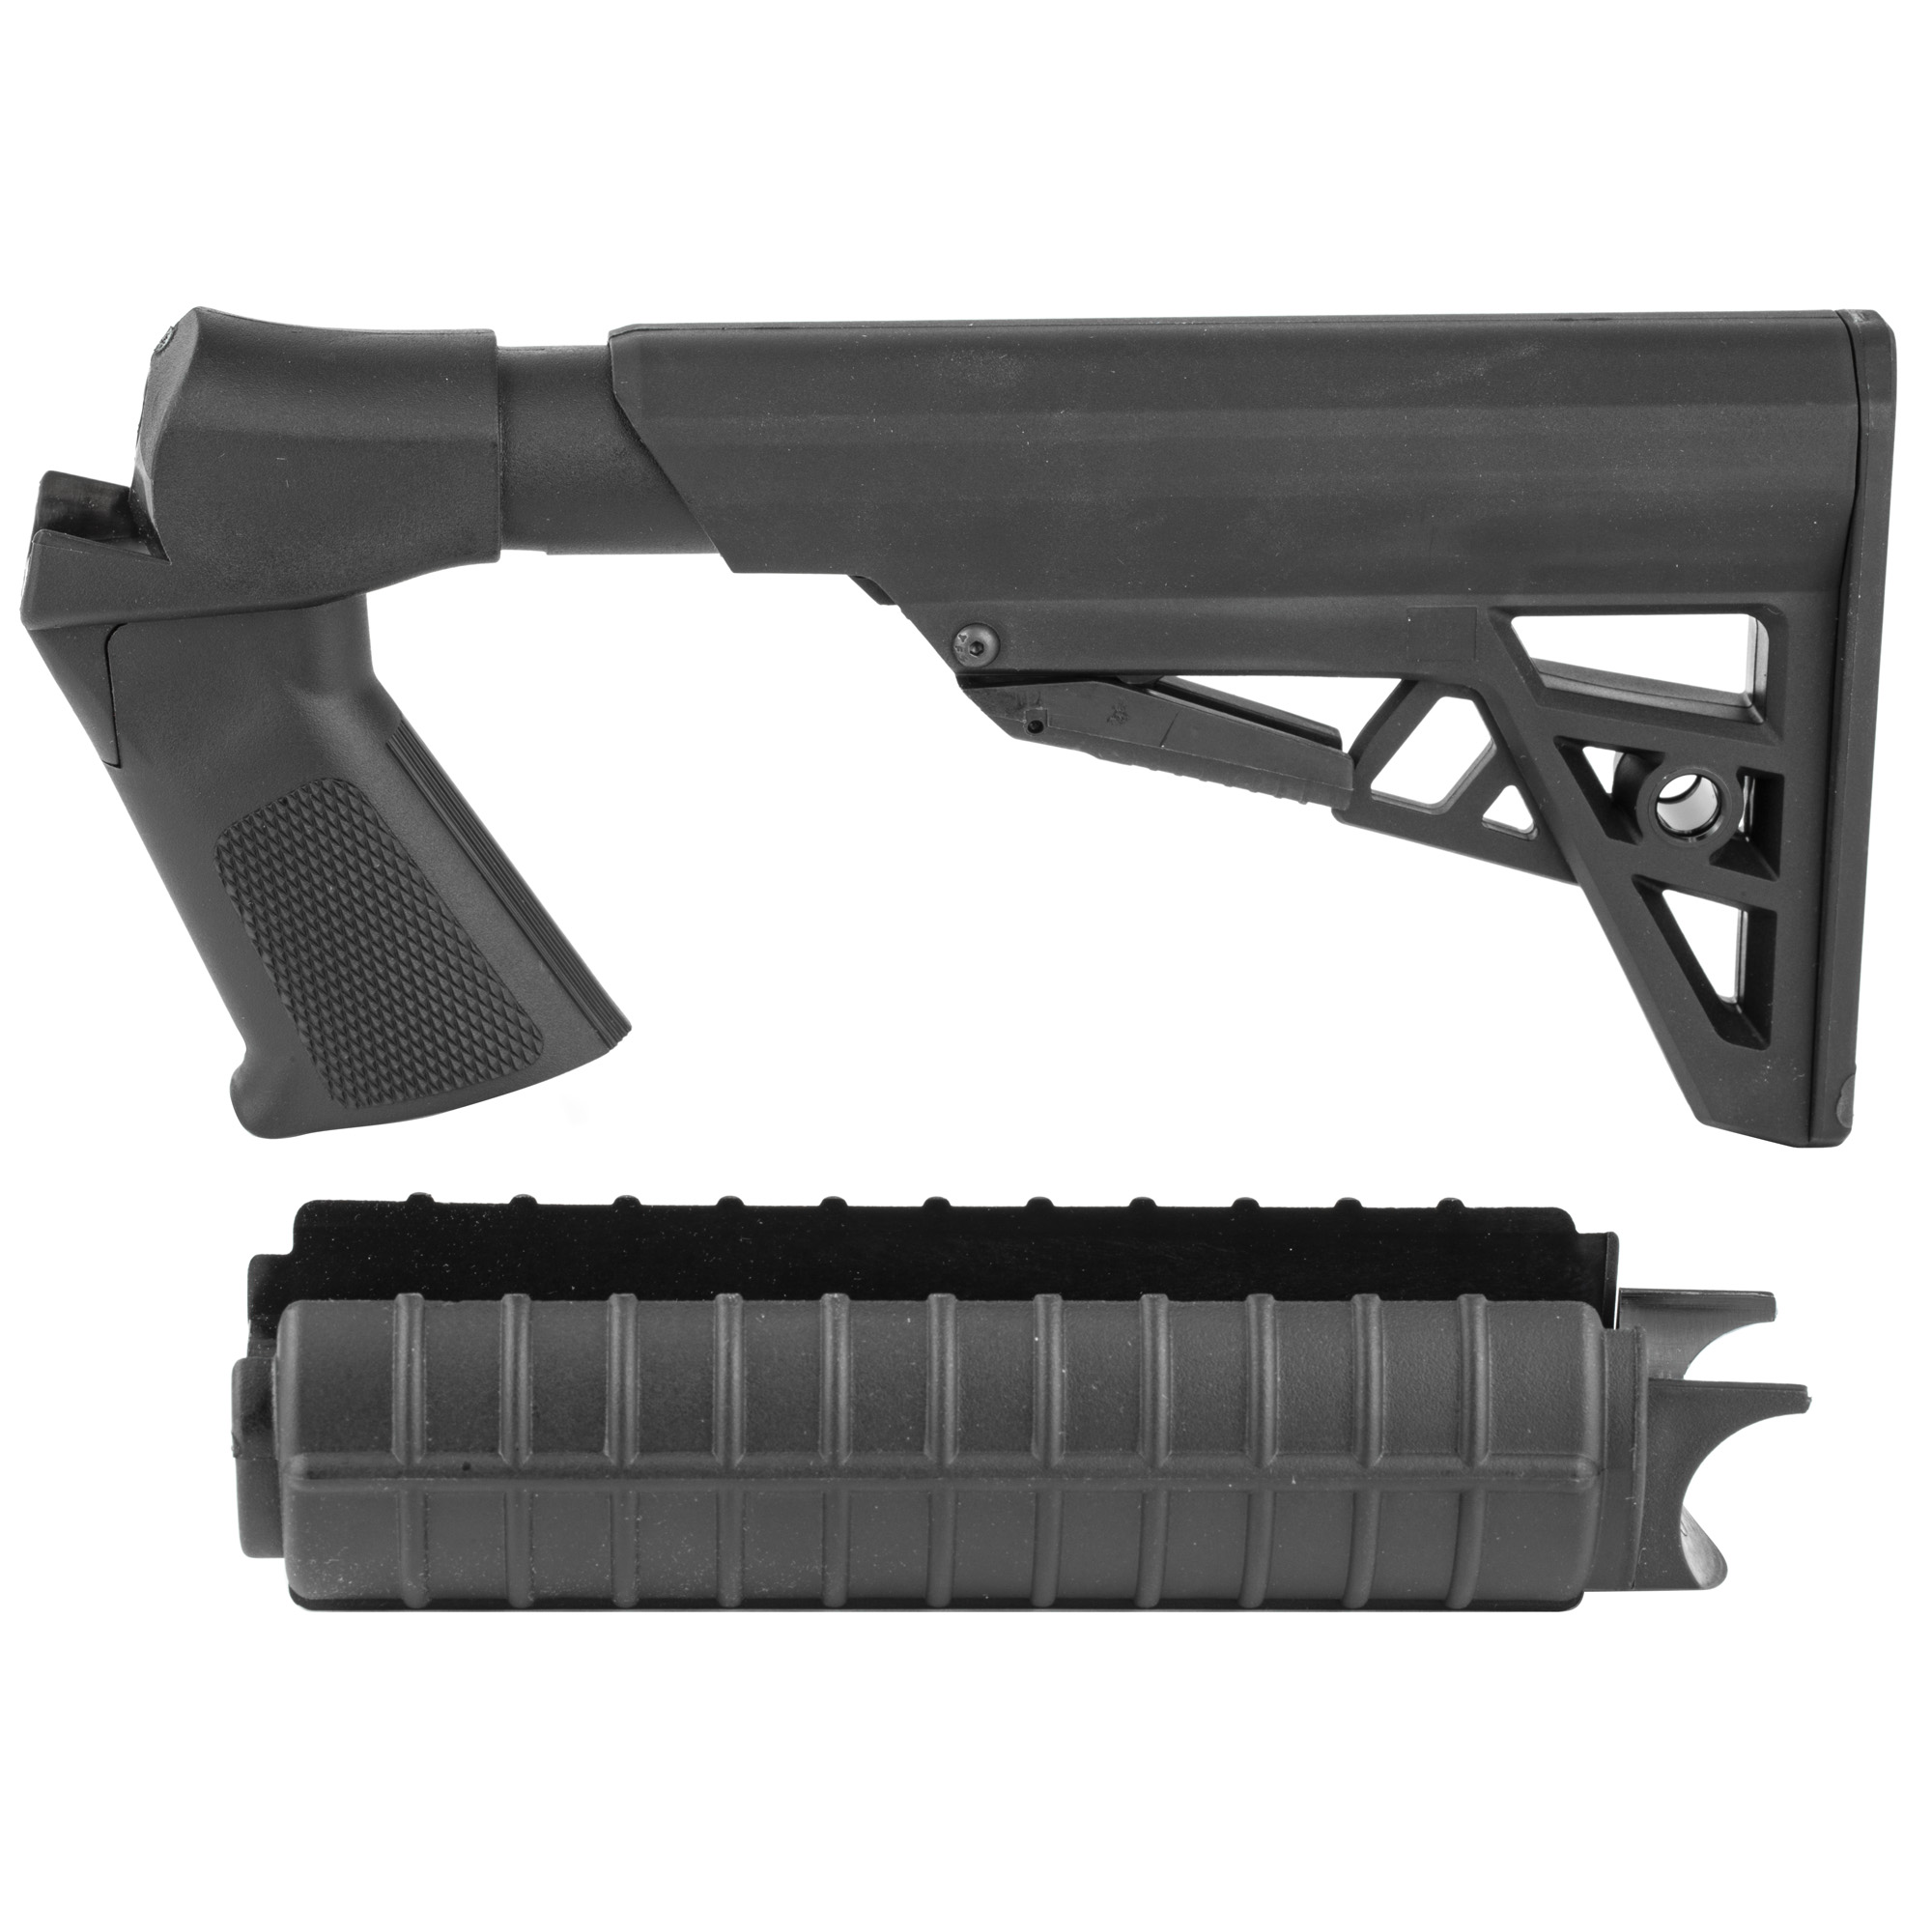 """The Advanced Technology Int. Shotforce Six-Position Adjustable Pistol Grip Stock & Forend Package fits most H&R/NEF 12"""" 16"""" & 20 Ga"""" 410"""" H&R and NEF single shot shotguns or rifles. Does not fit the H&R Pardner Pump or Youth Model Firearms. It is compact for transport and carry"""" has a textured grip for increased control and accuracy and its ribbed forend provides a stable forward grip for all shooters. The length of pull is 10 3/4"""" to 14 3/4"""". It is easy to install and all mounting hardware is included. Made in the USA."""